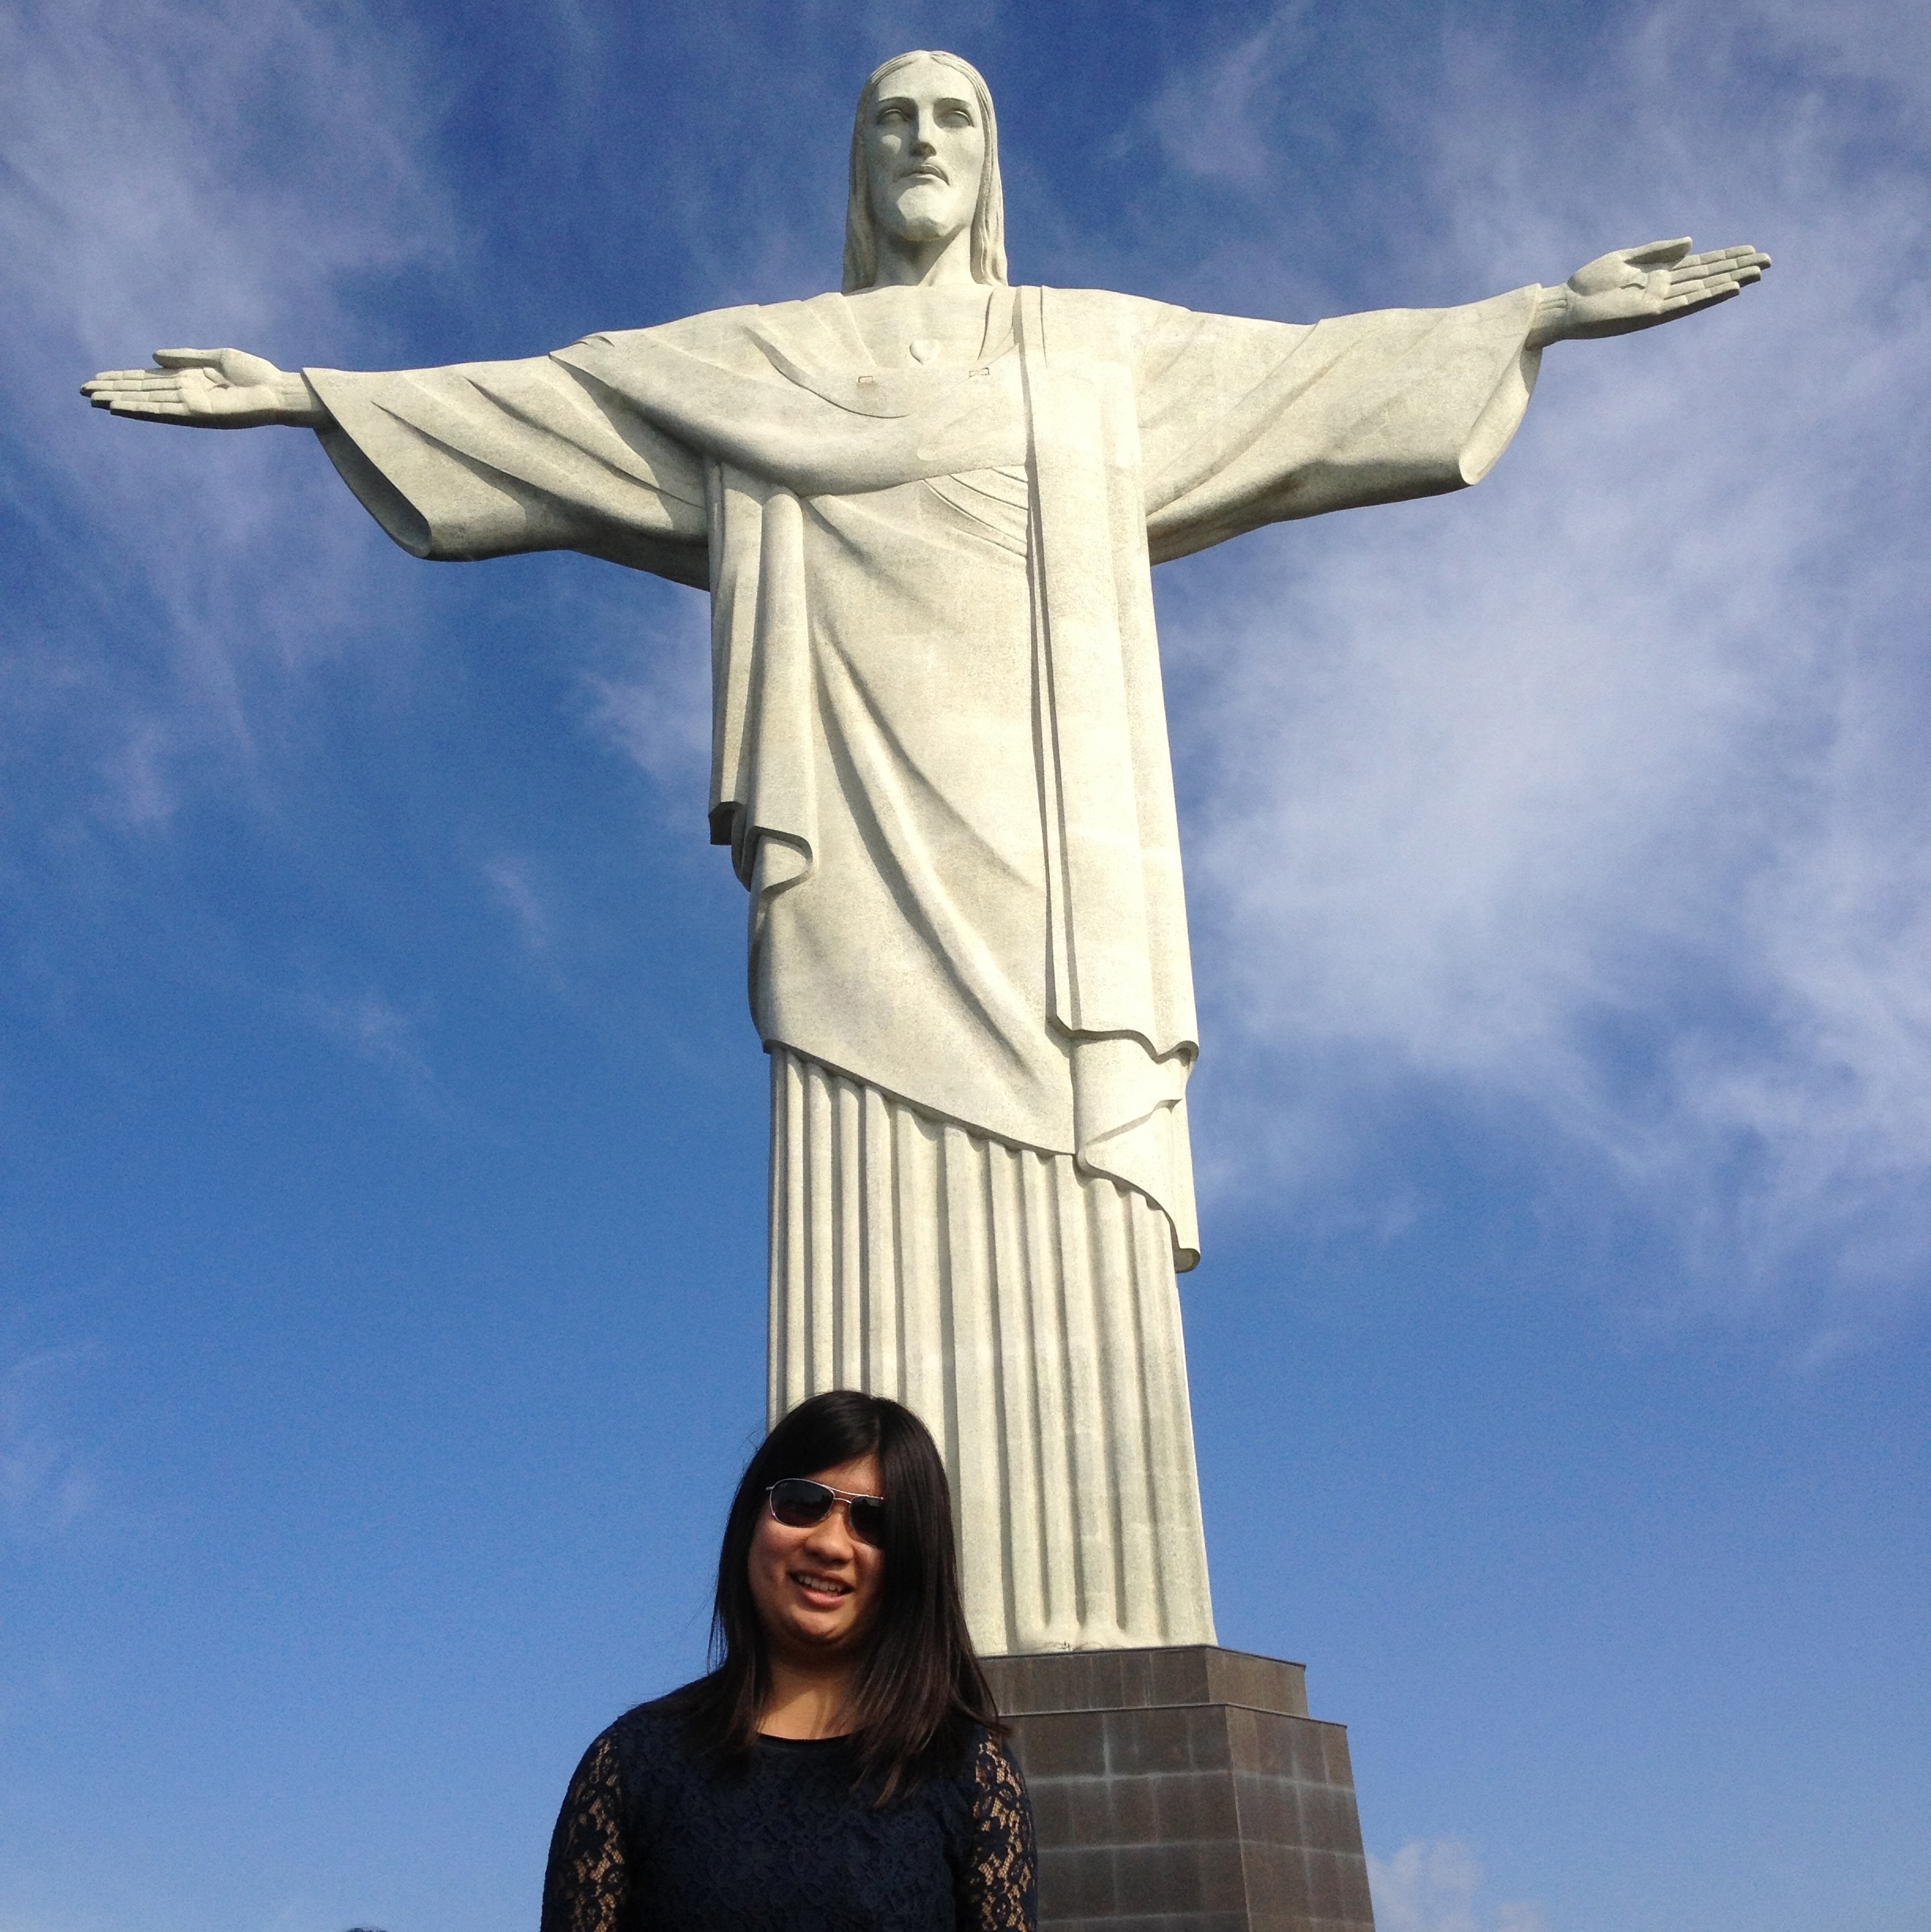 Tucan Travel Overland Tour Highlights: Brazil